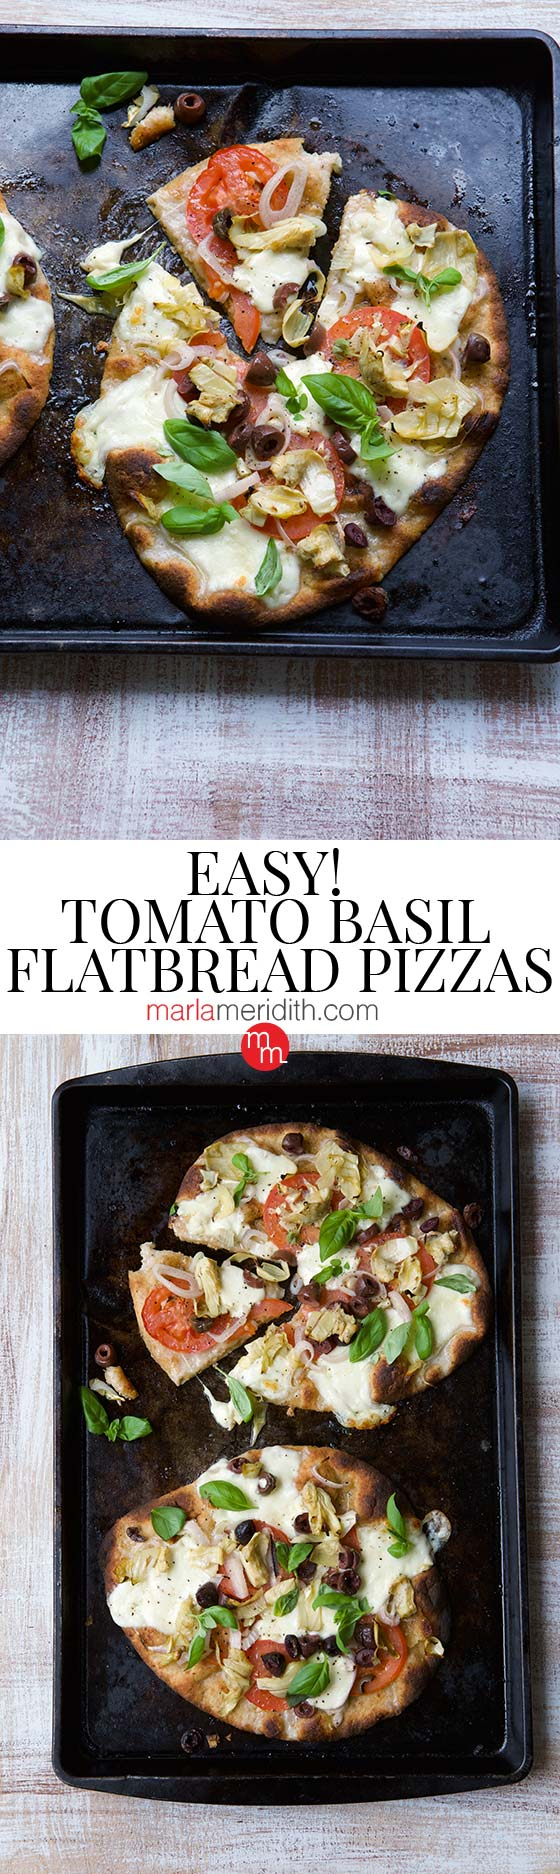 Make the most of summer produce with these Easy Tomato Basil Flatbread Pizzas ~ Get the recipe on MarlaMeridith.com